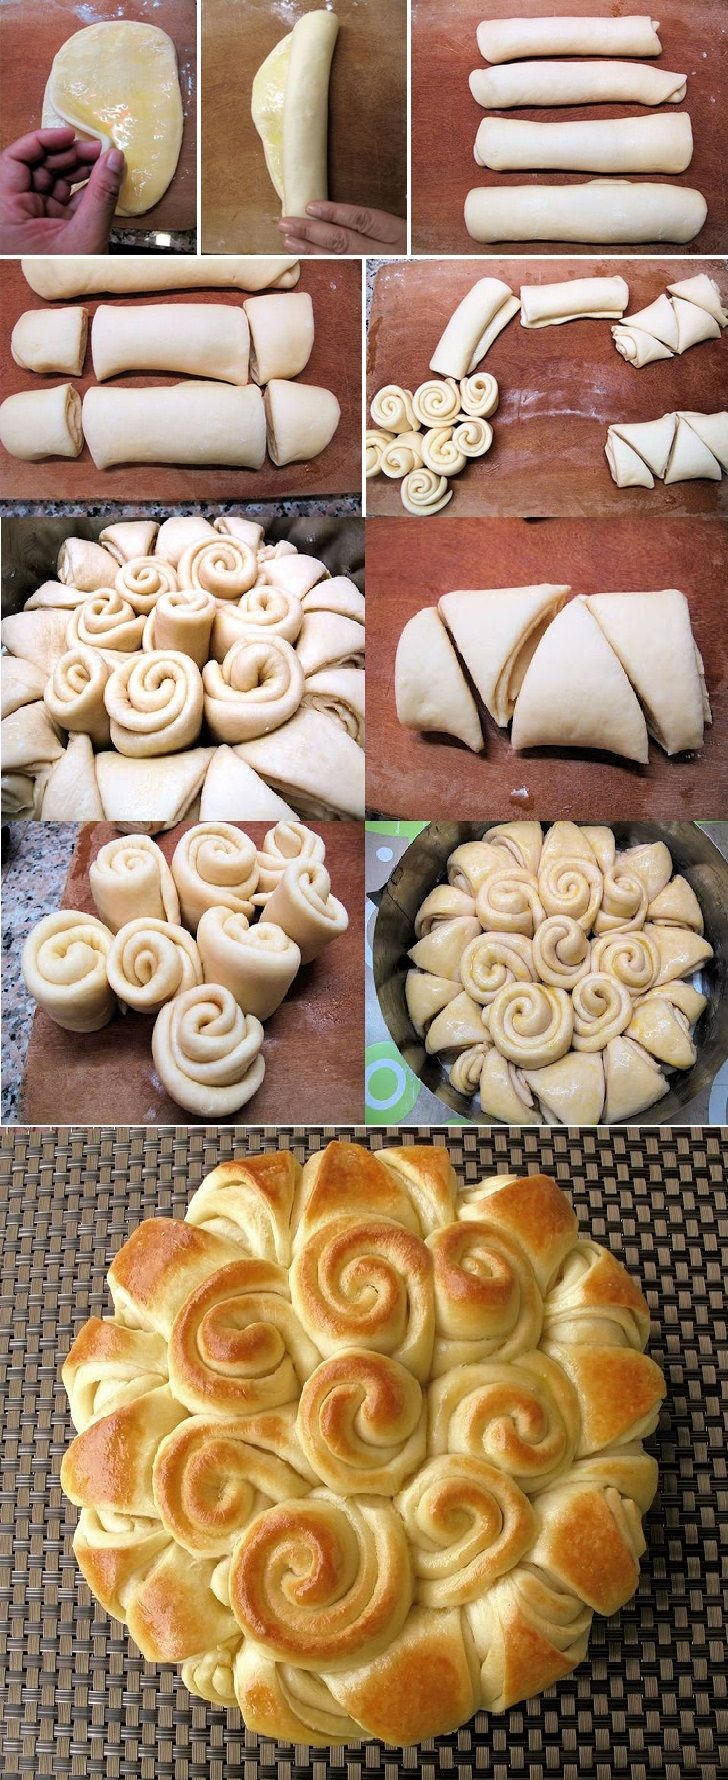 Happy Holiday Bread - worth a try - using grain-free wraps ......